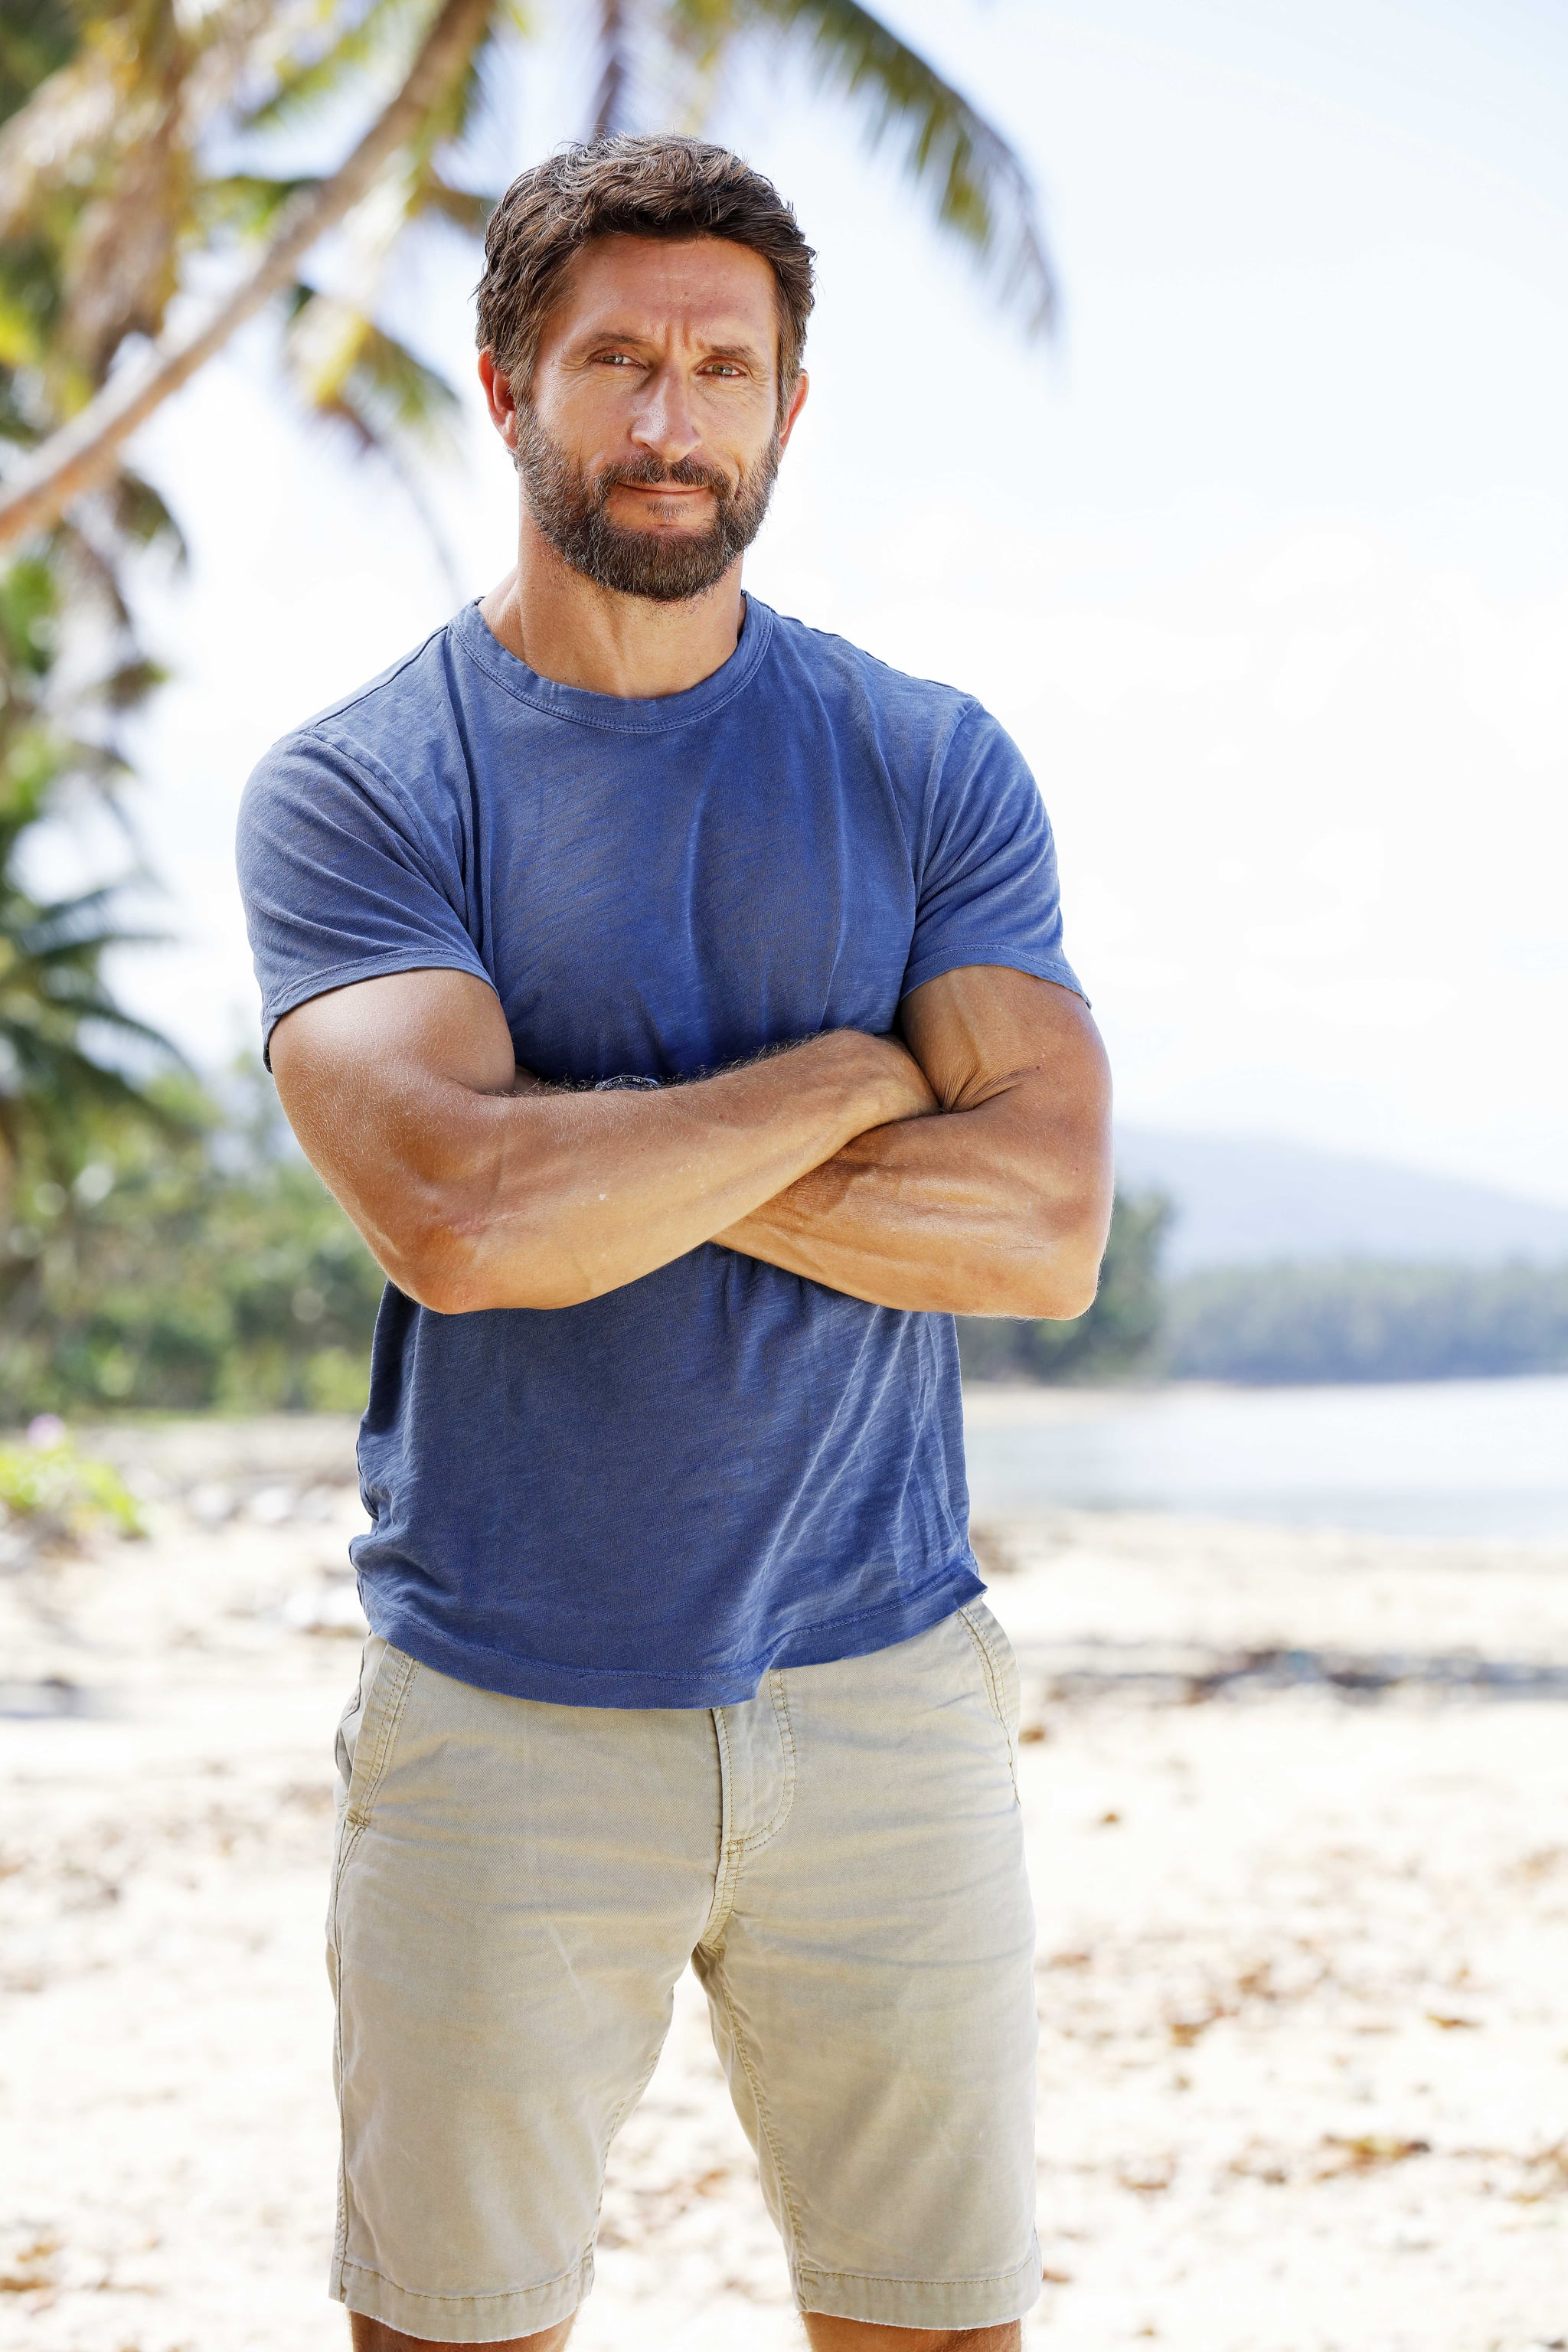 PHOTOGRAPH BY NIGEL WRIGHT. 2019AUSTRALIAN SURVIVOR...S4CHANNEL TEN.THIS PICTURE SHOWS...AS SERIES 4....EPISODE 9... HOST JONATHAN LA PAGLIA .